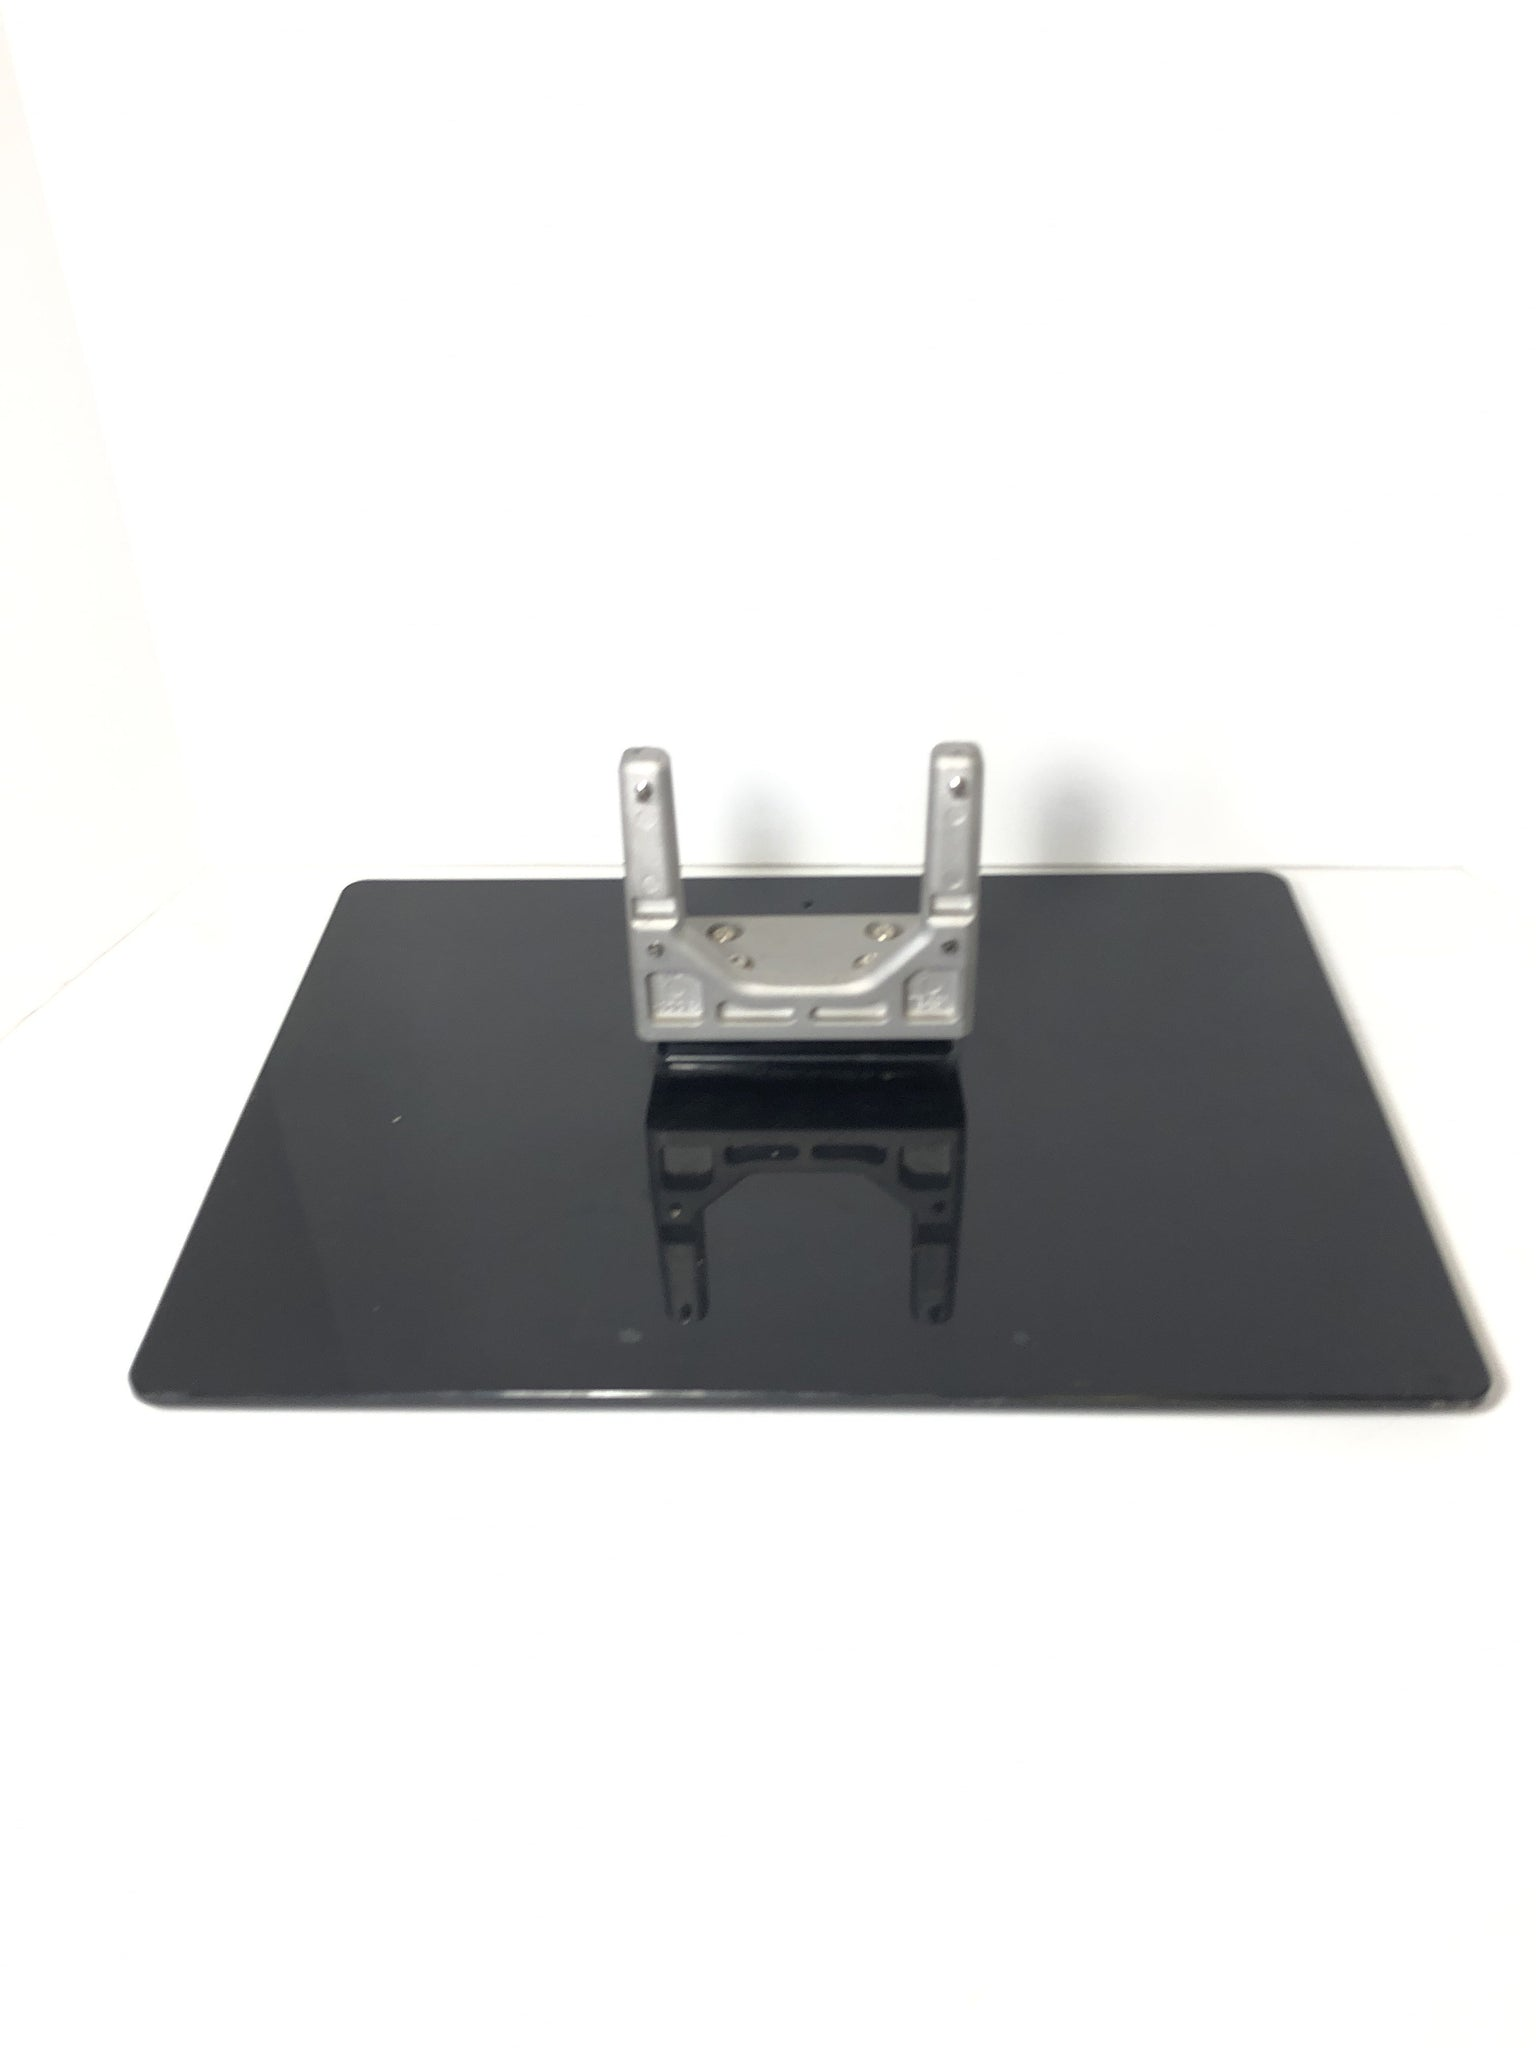 Panasonic TBL5ZX0029 Stand for TC-P42S30